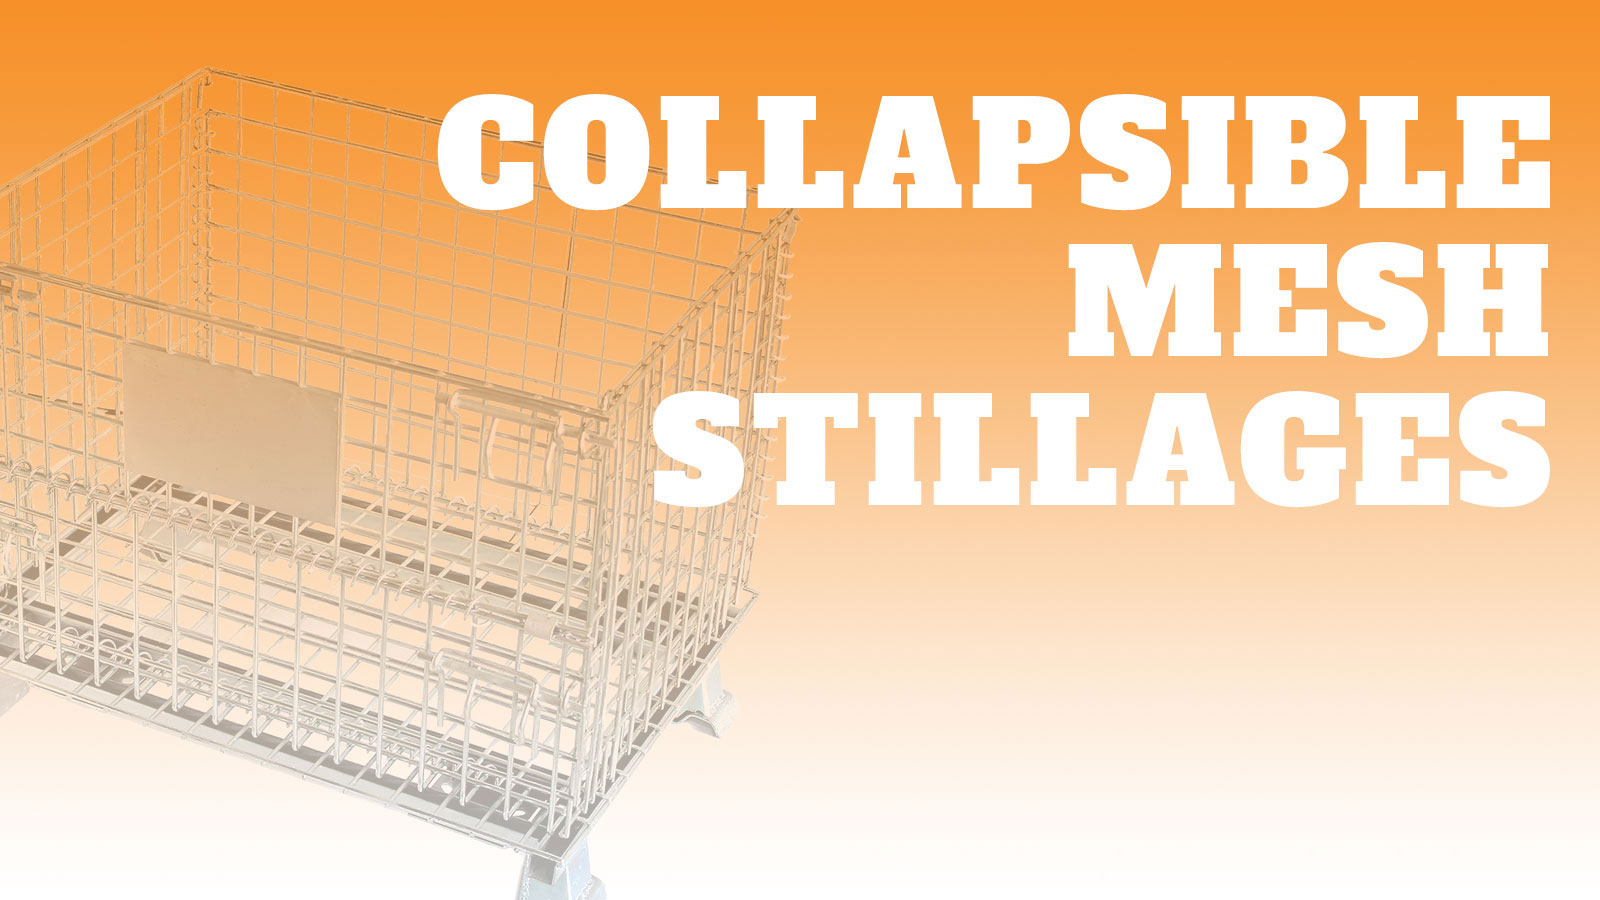 Industrial-Collapsible-Mesh-Stillages